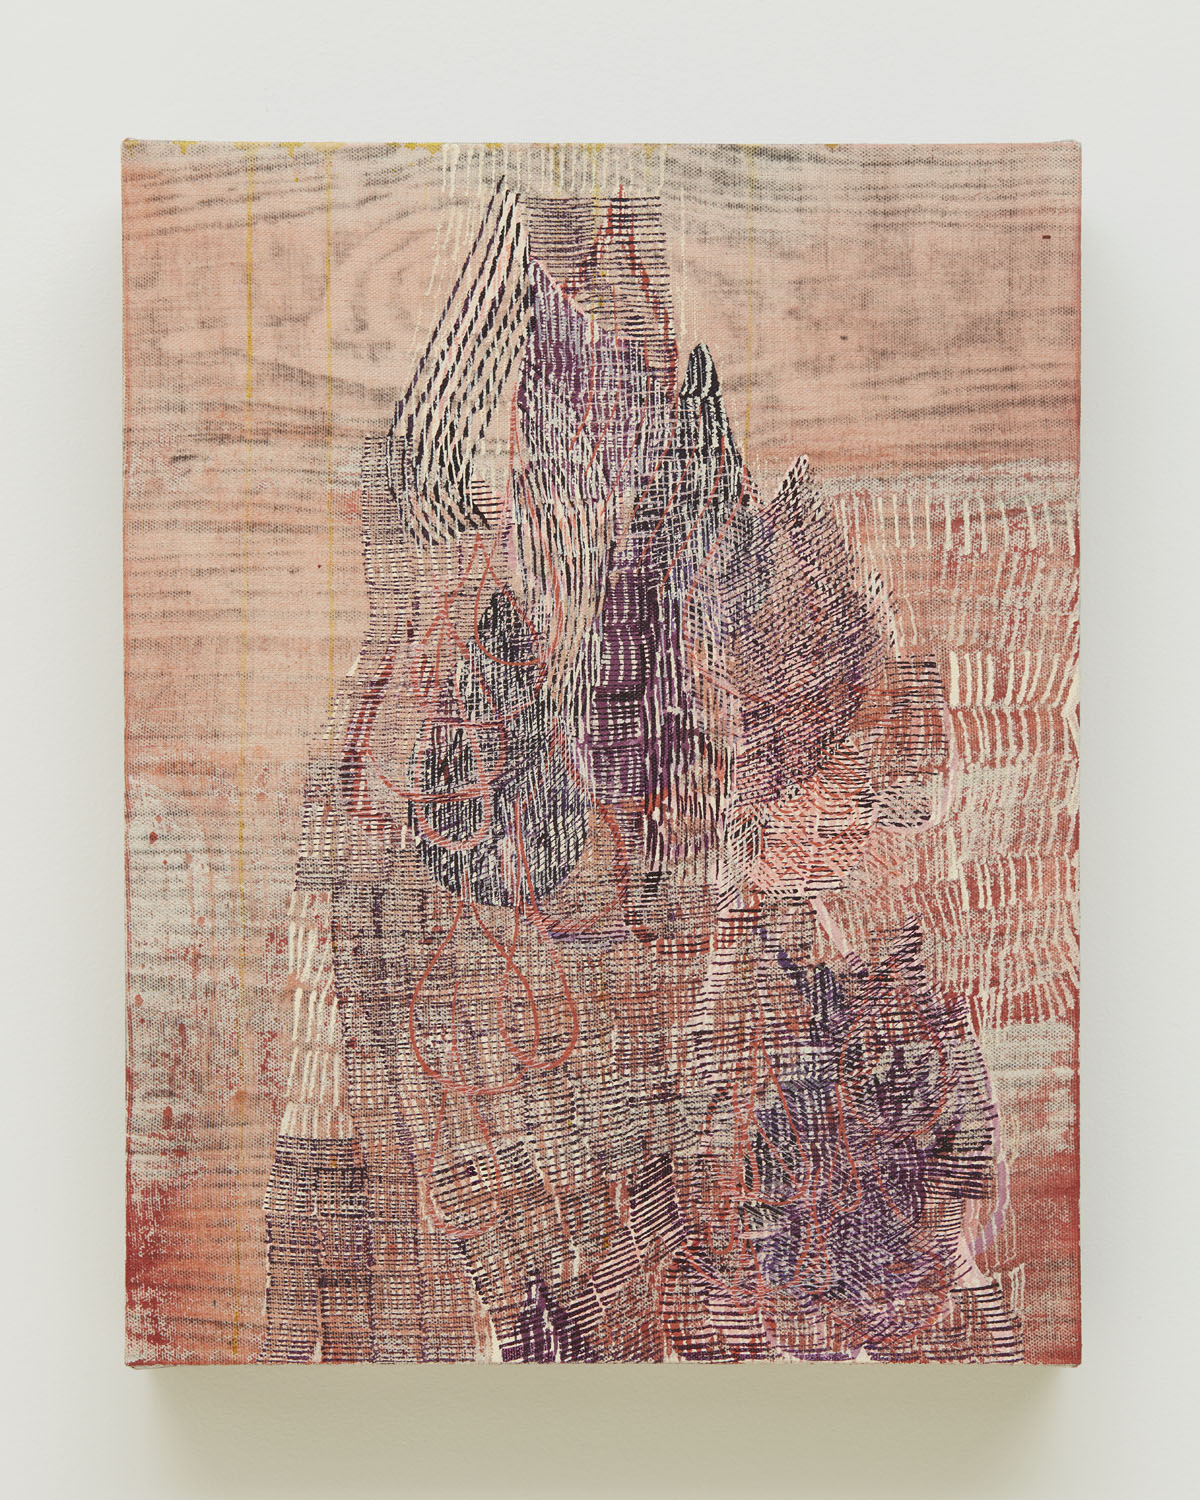 Tight Knit, 2017, by Alyse Rosner, purple and red, abstract ,wood grain and hatched line pattern, acrylic and graphite painting on canvas.